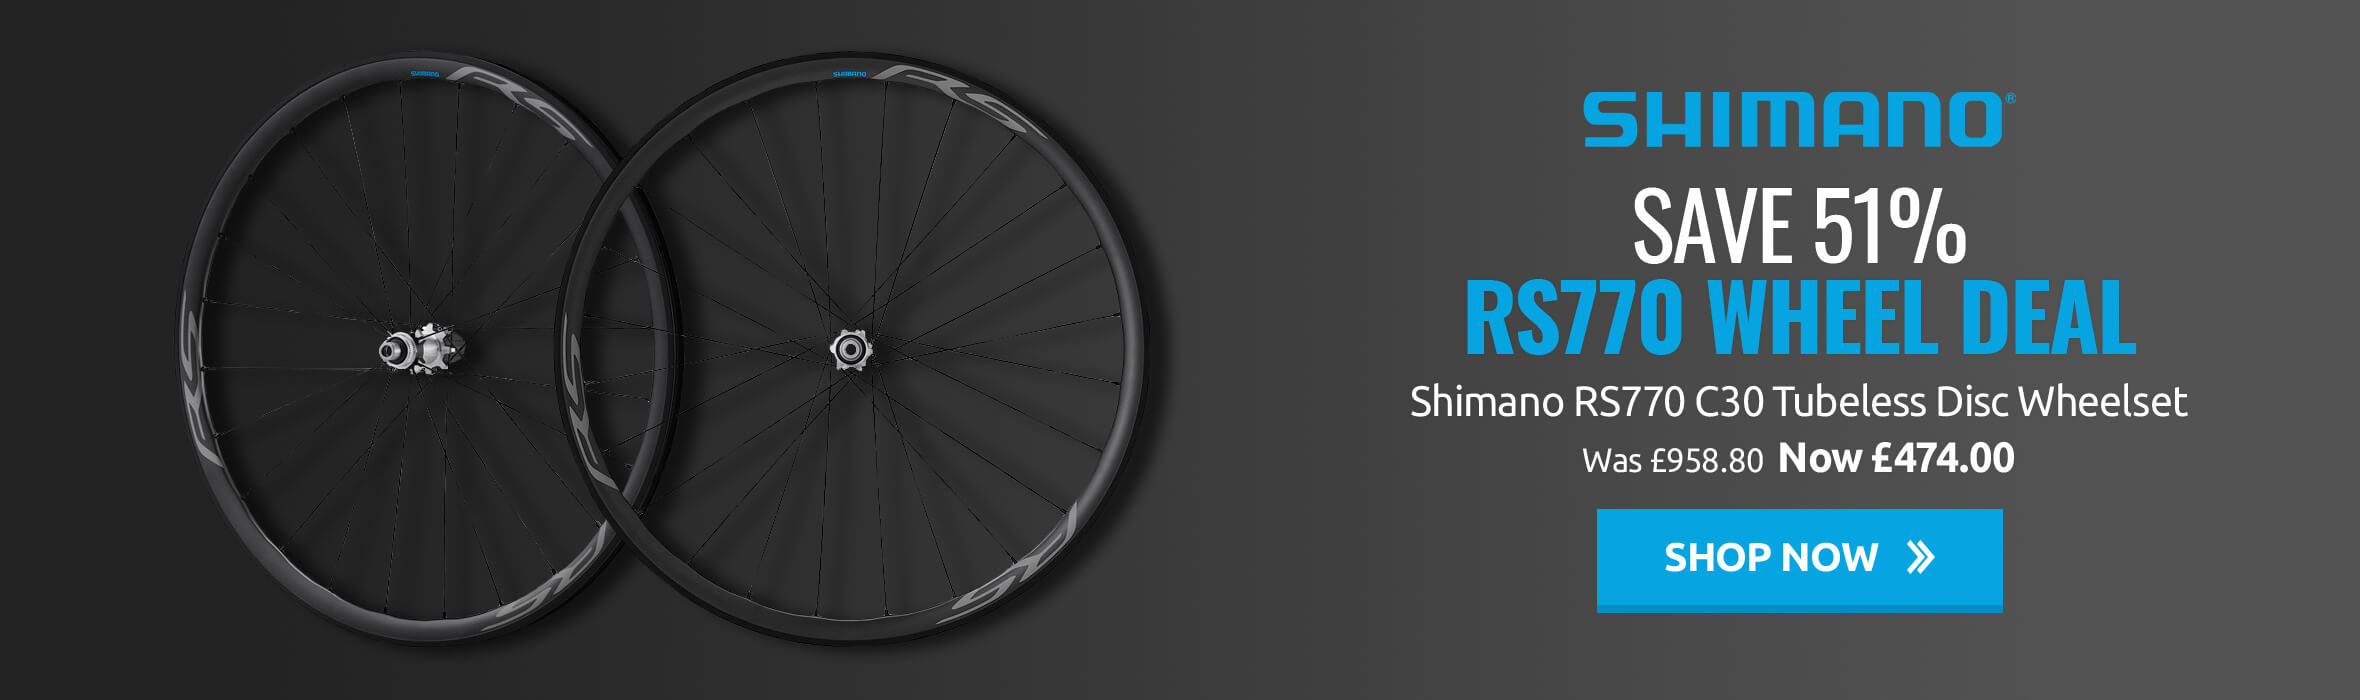 Save 51% on Shimano RS770 Wheel Deal